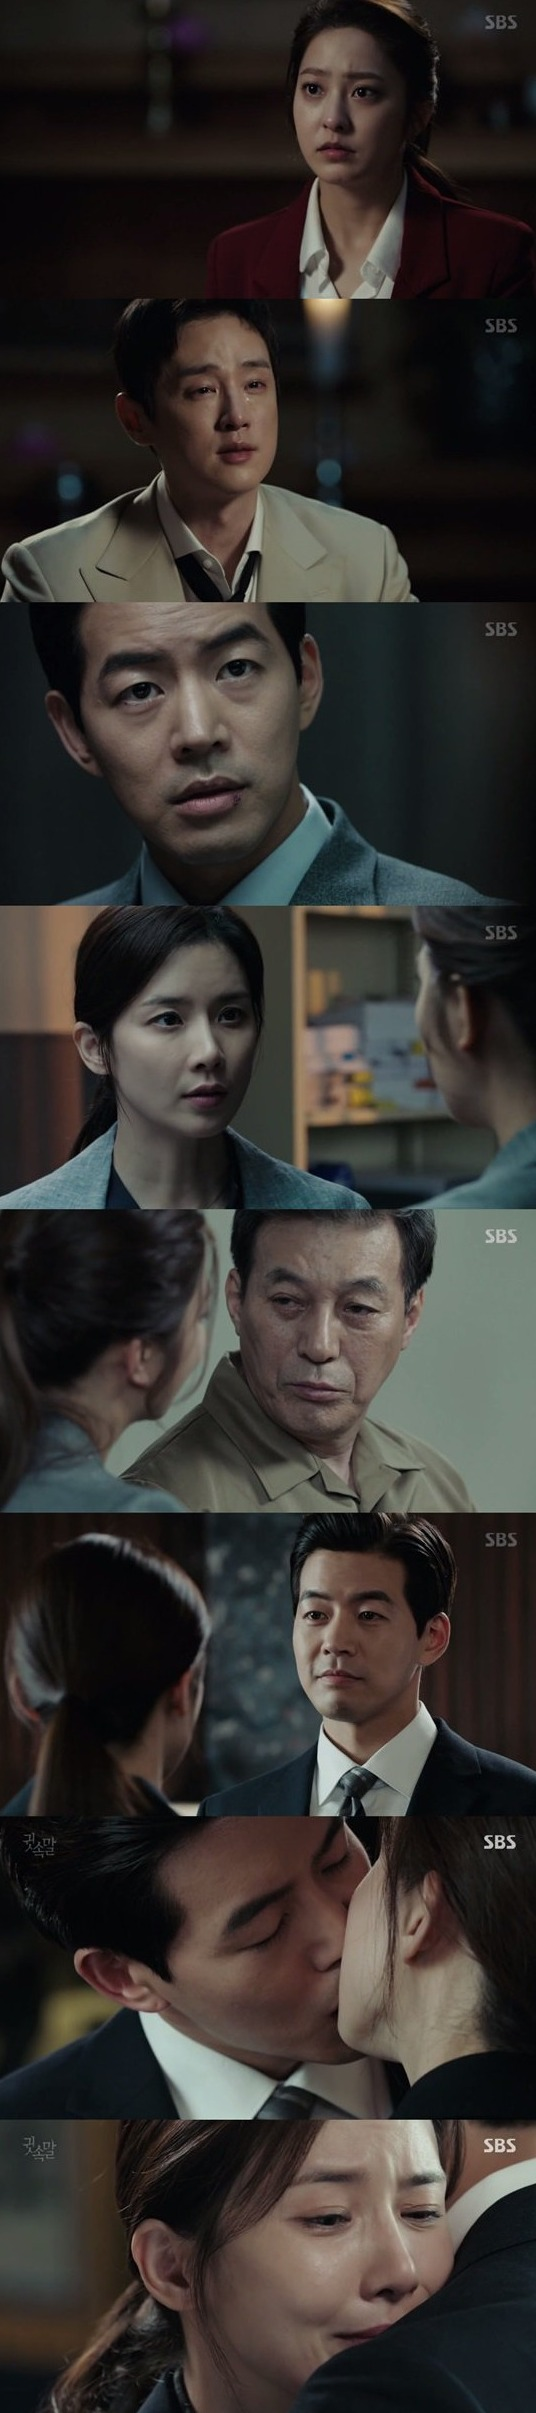 [Spoiler] Added episode 16 captures for the Korean drama 'Whisper'